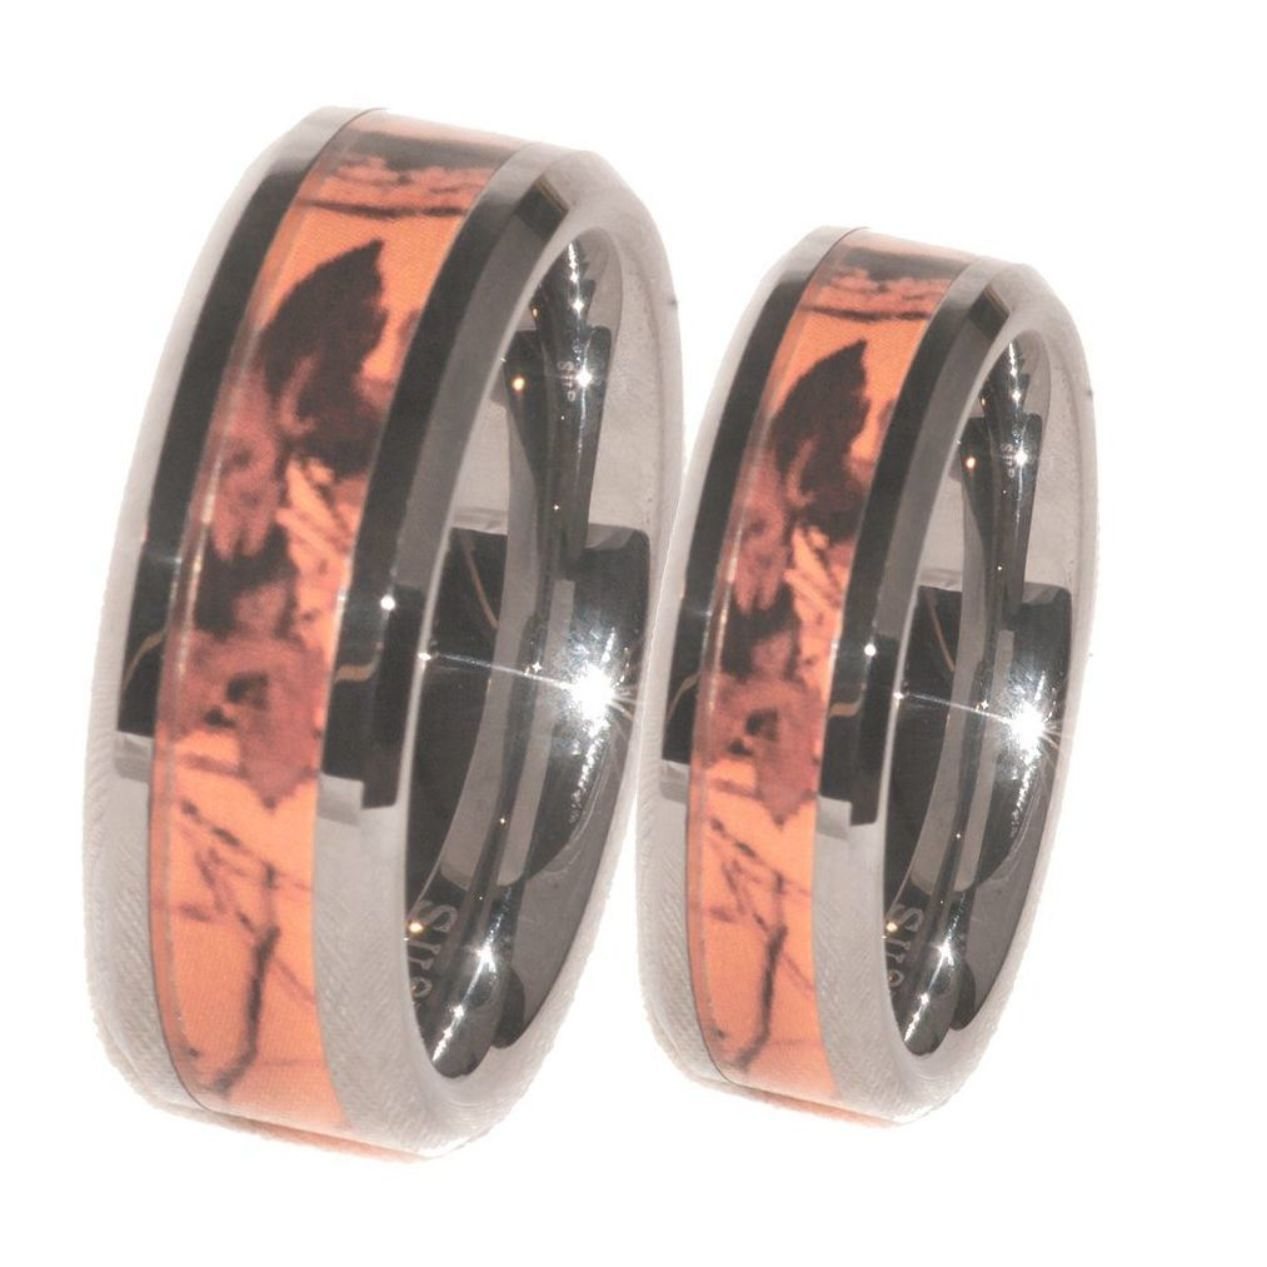 Orange Camouflage Couples Promise Christmas Gift Anniversary Or Wedding Rings Camo Wedding Rings Hunting Wedding Rings Rose Gold Diamond Ring Engagement